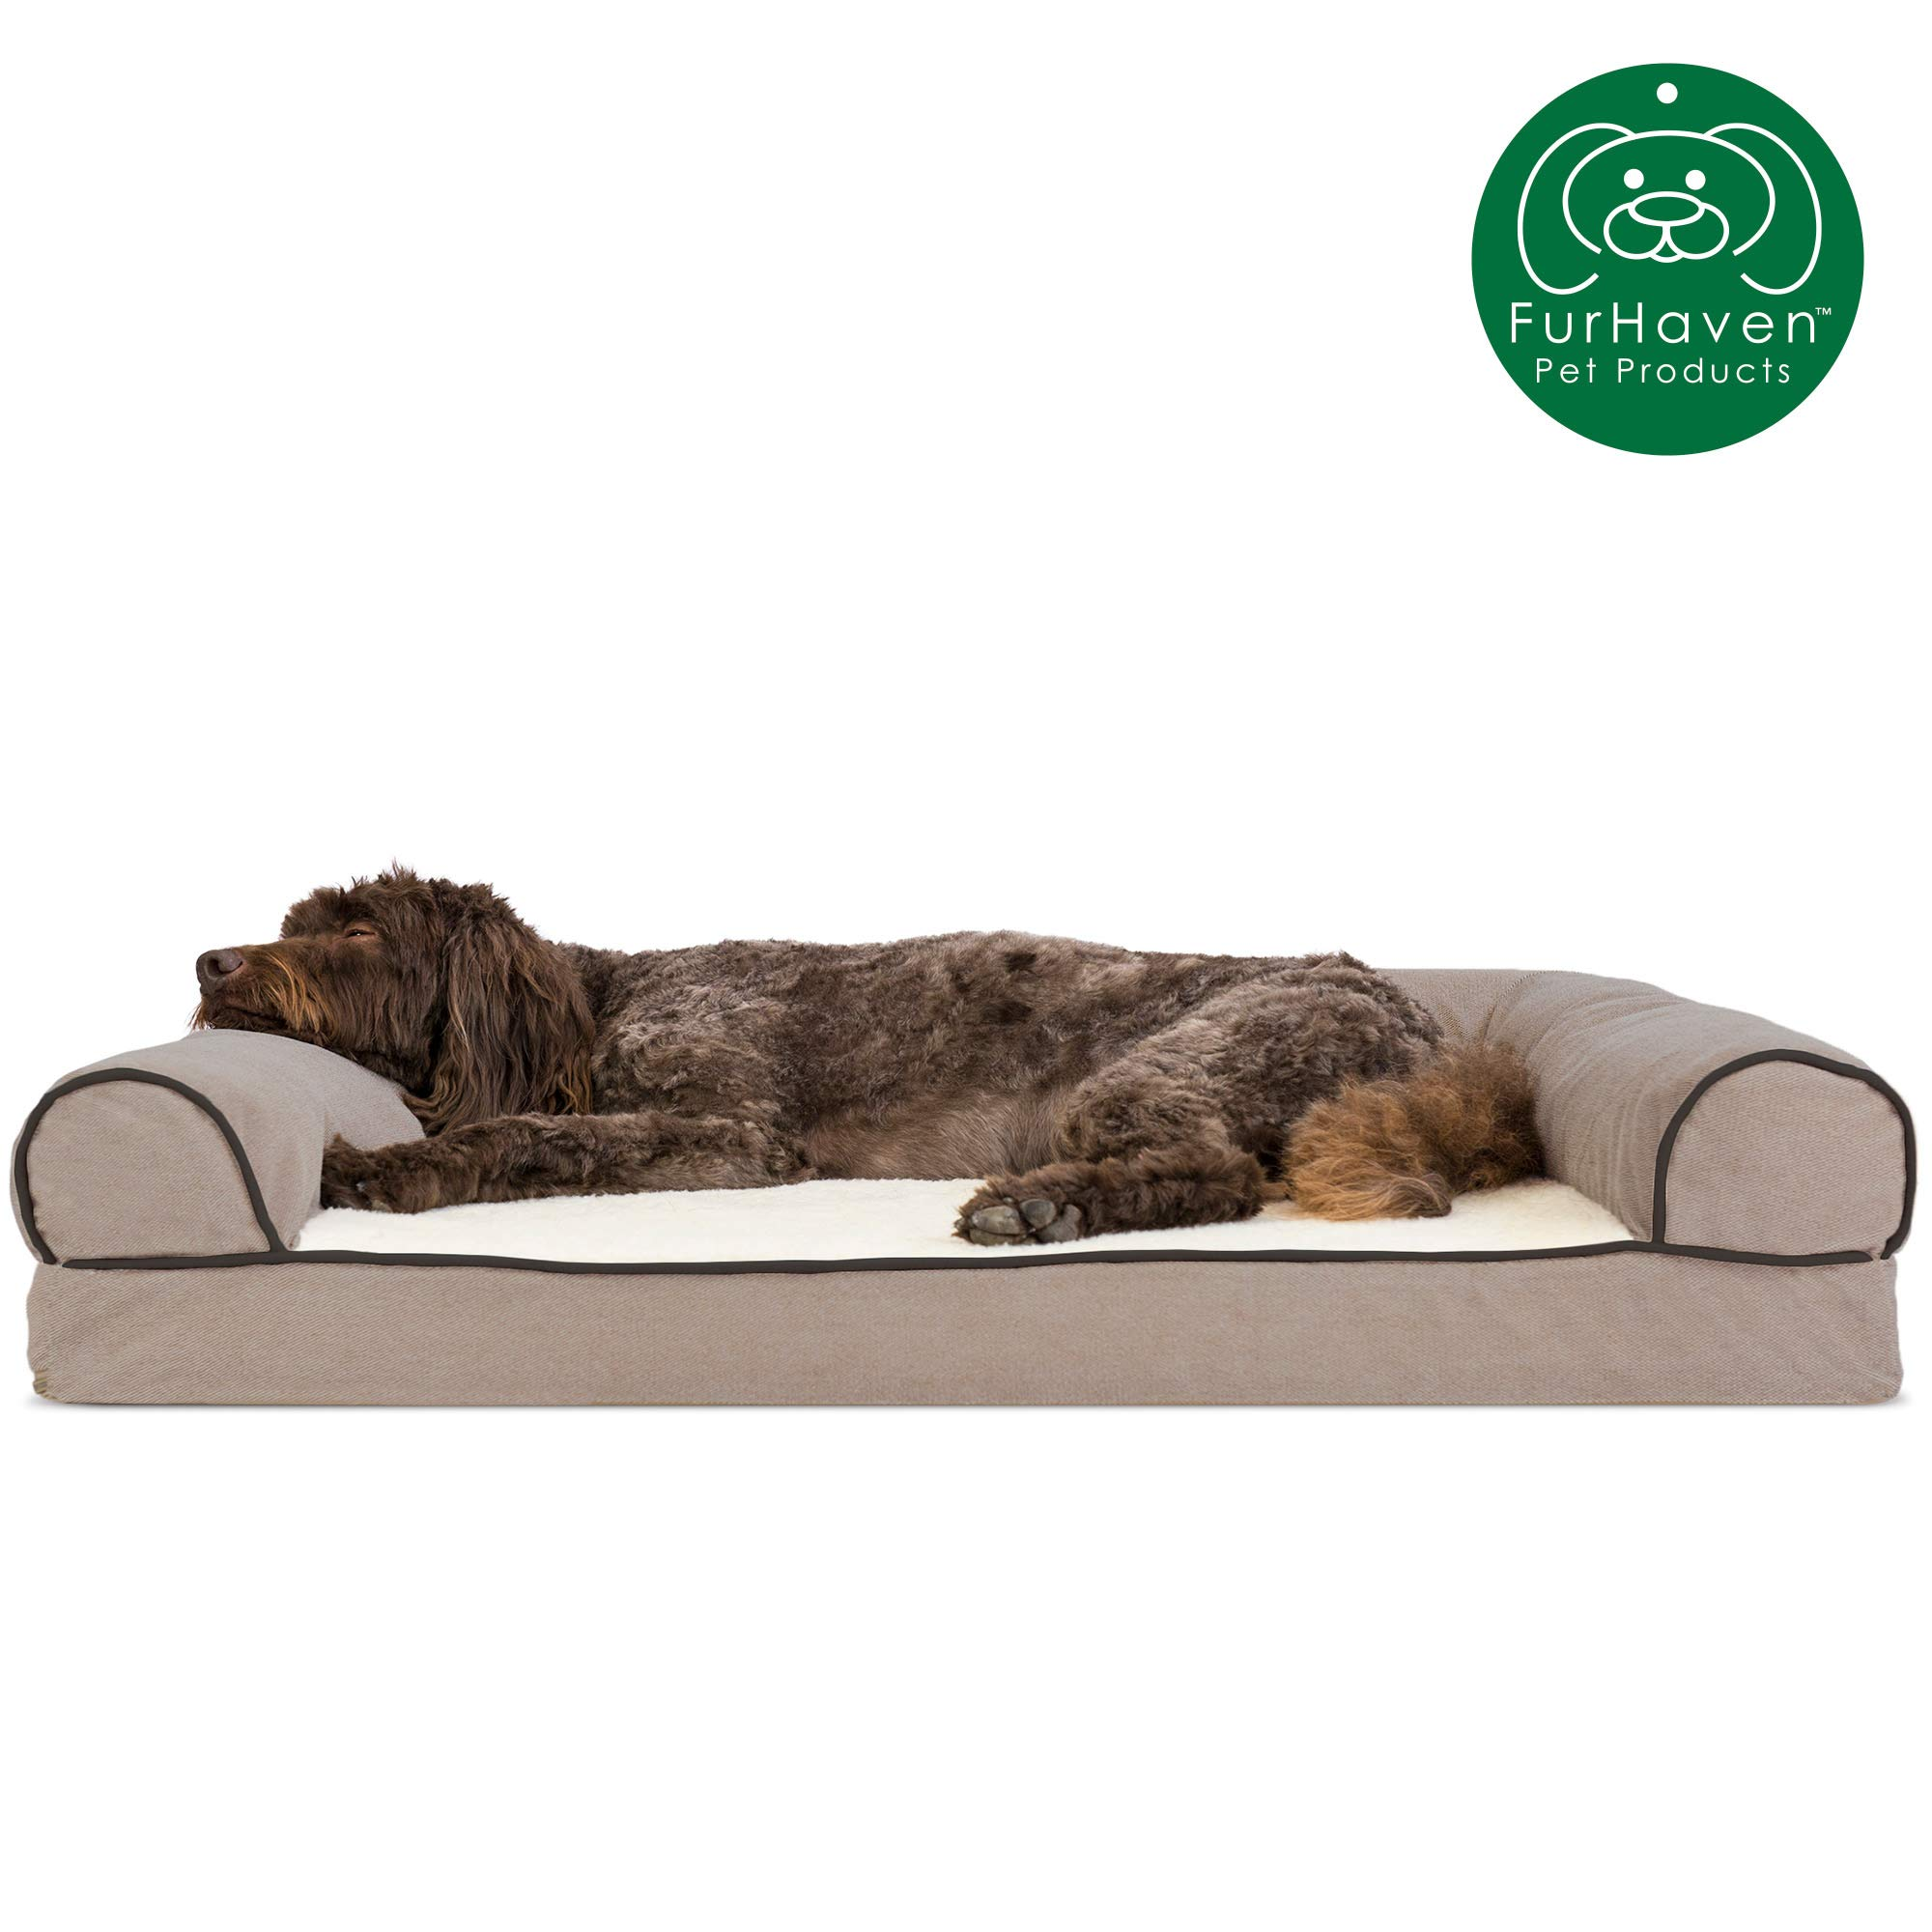 Furhaven Pet Dog Bed | Memory Foam Faux Fleece & Chenille Traditional Sofa-Style Living Room Couch Pet Bed w/ Removable Cover for Dogs & Cats, Cream, Large